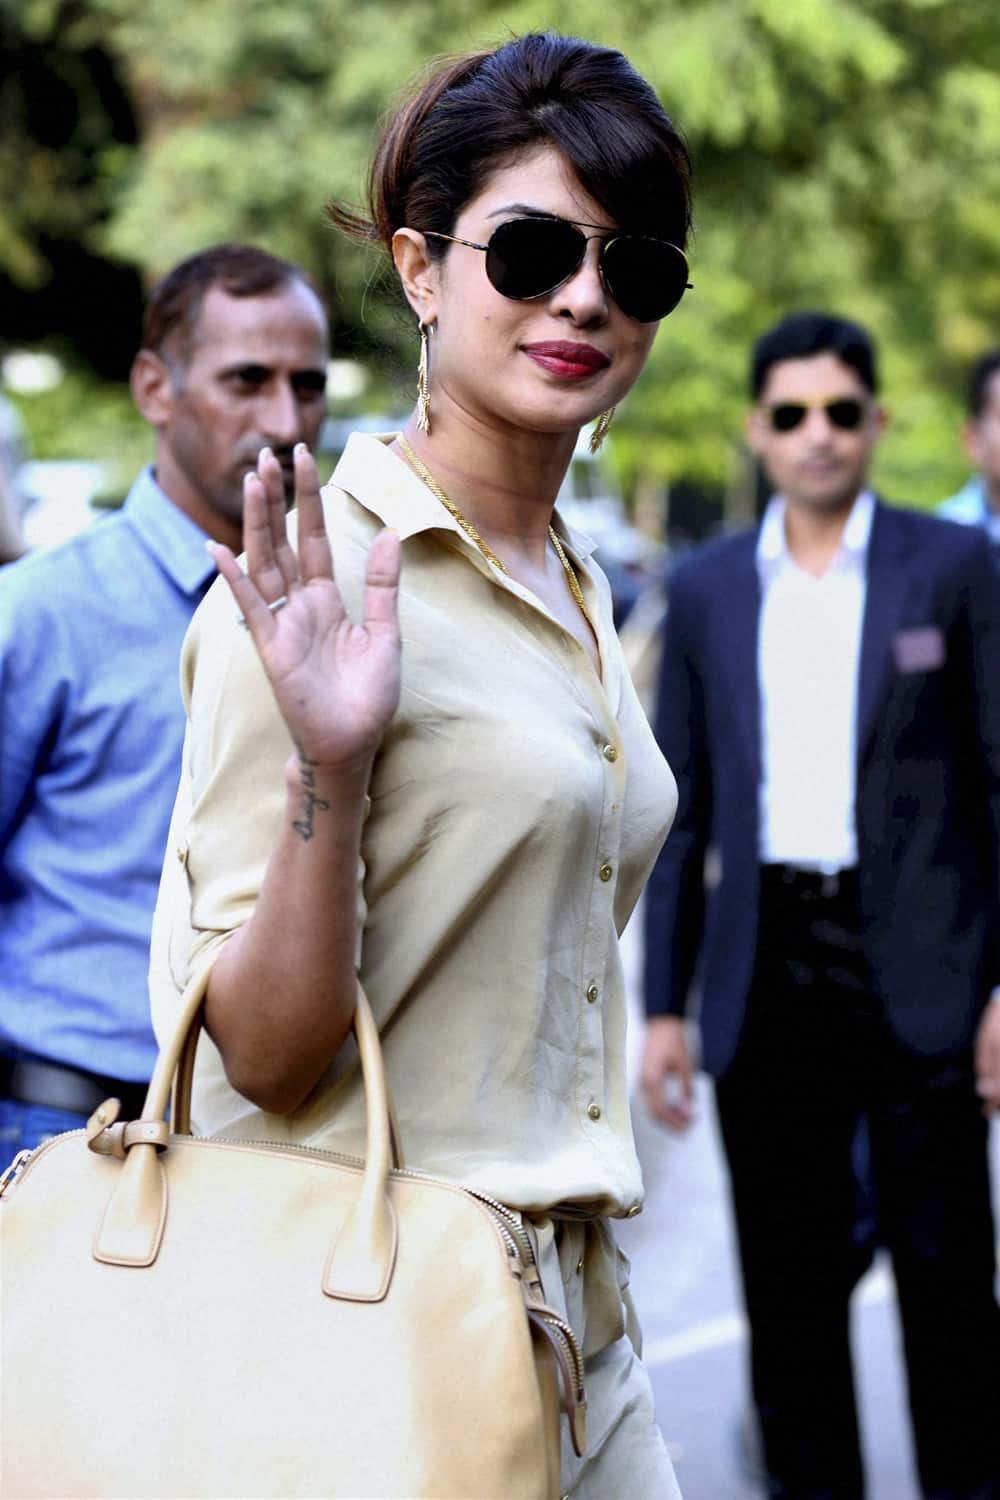 Priyanka Chopra leaving Jodhpur after attending Nita Ambani's birthday, in Jodhpur.